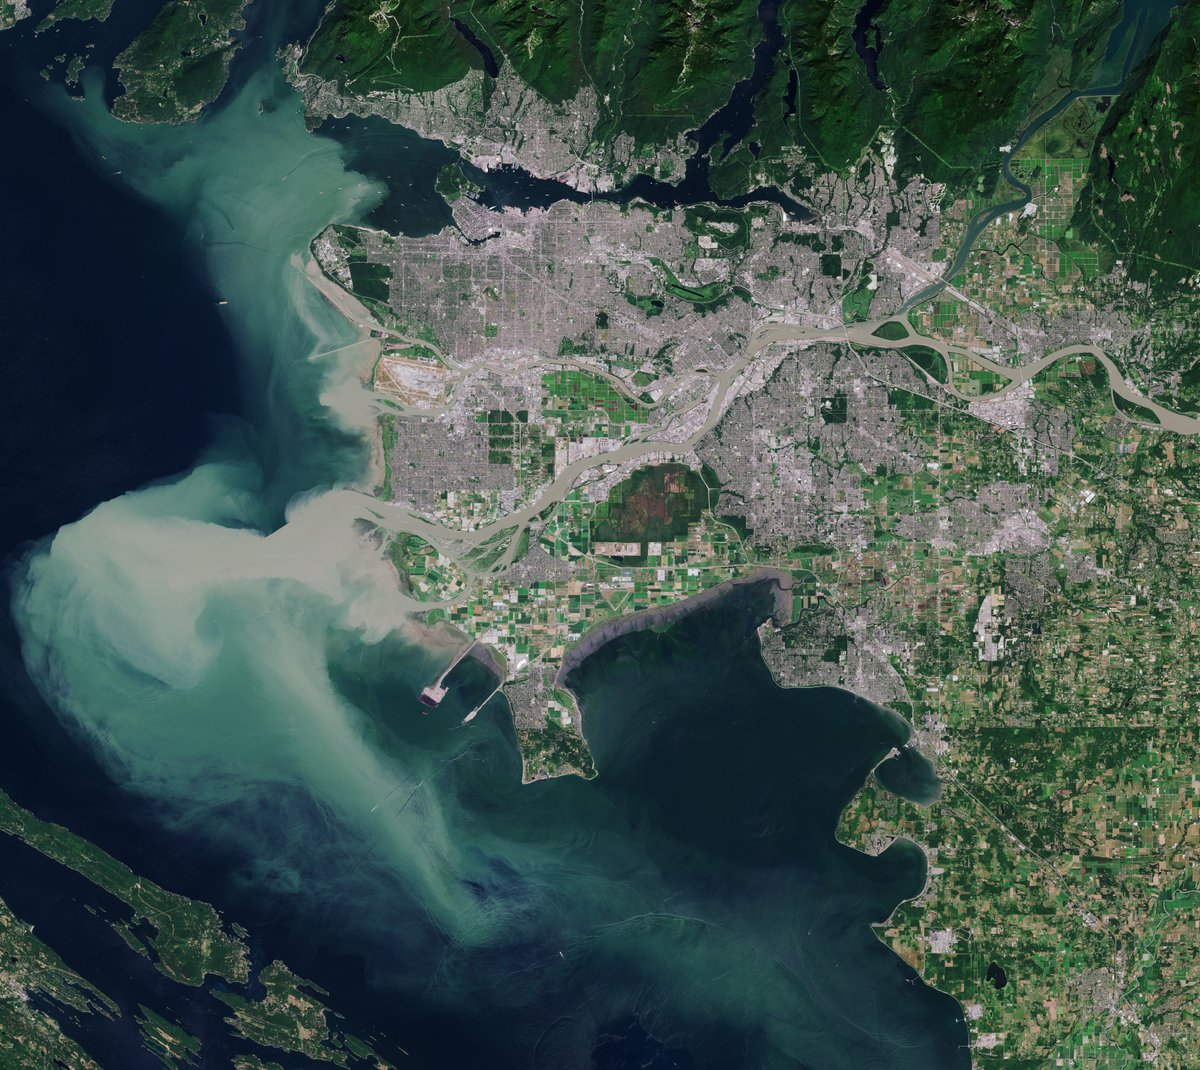 📷 #Vancouver, third largest city in #Canada, seen from space, in this @CopernicusEU #Sentinel2 image. Zoom in at the link to see in full 10 m resolution 👉